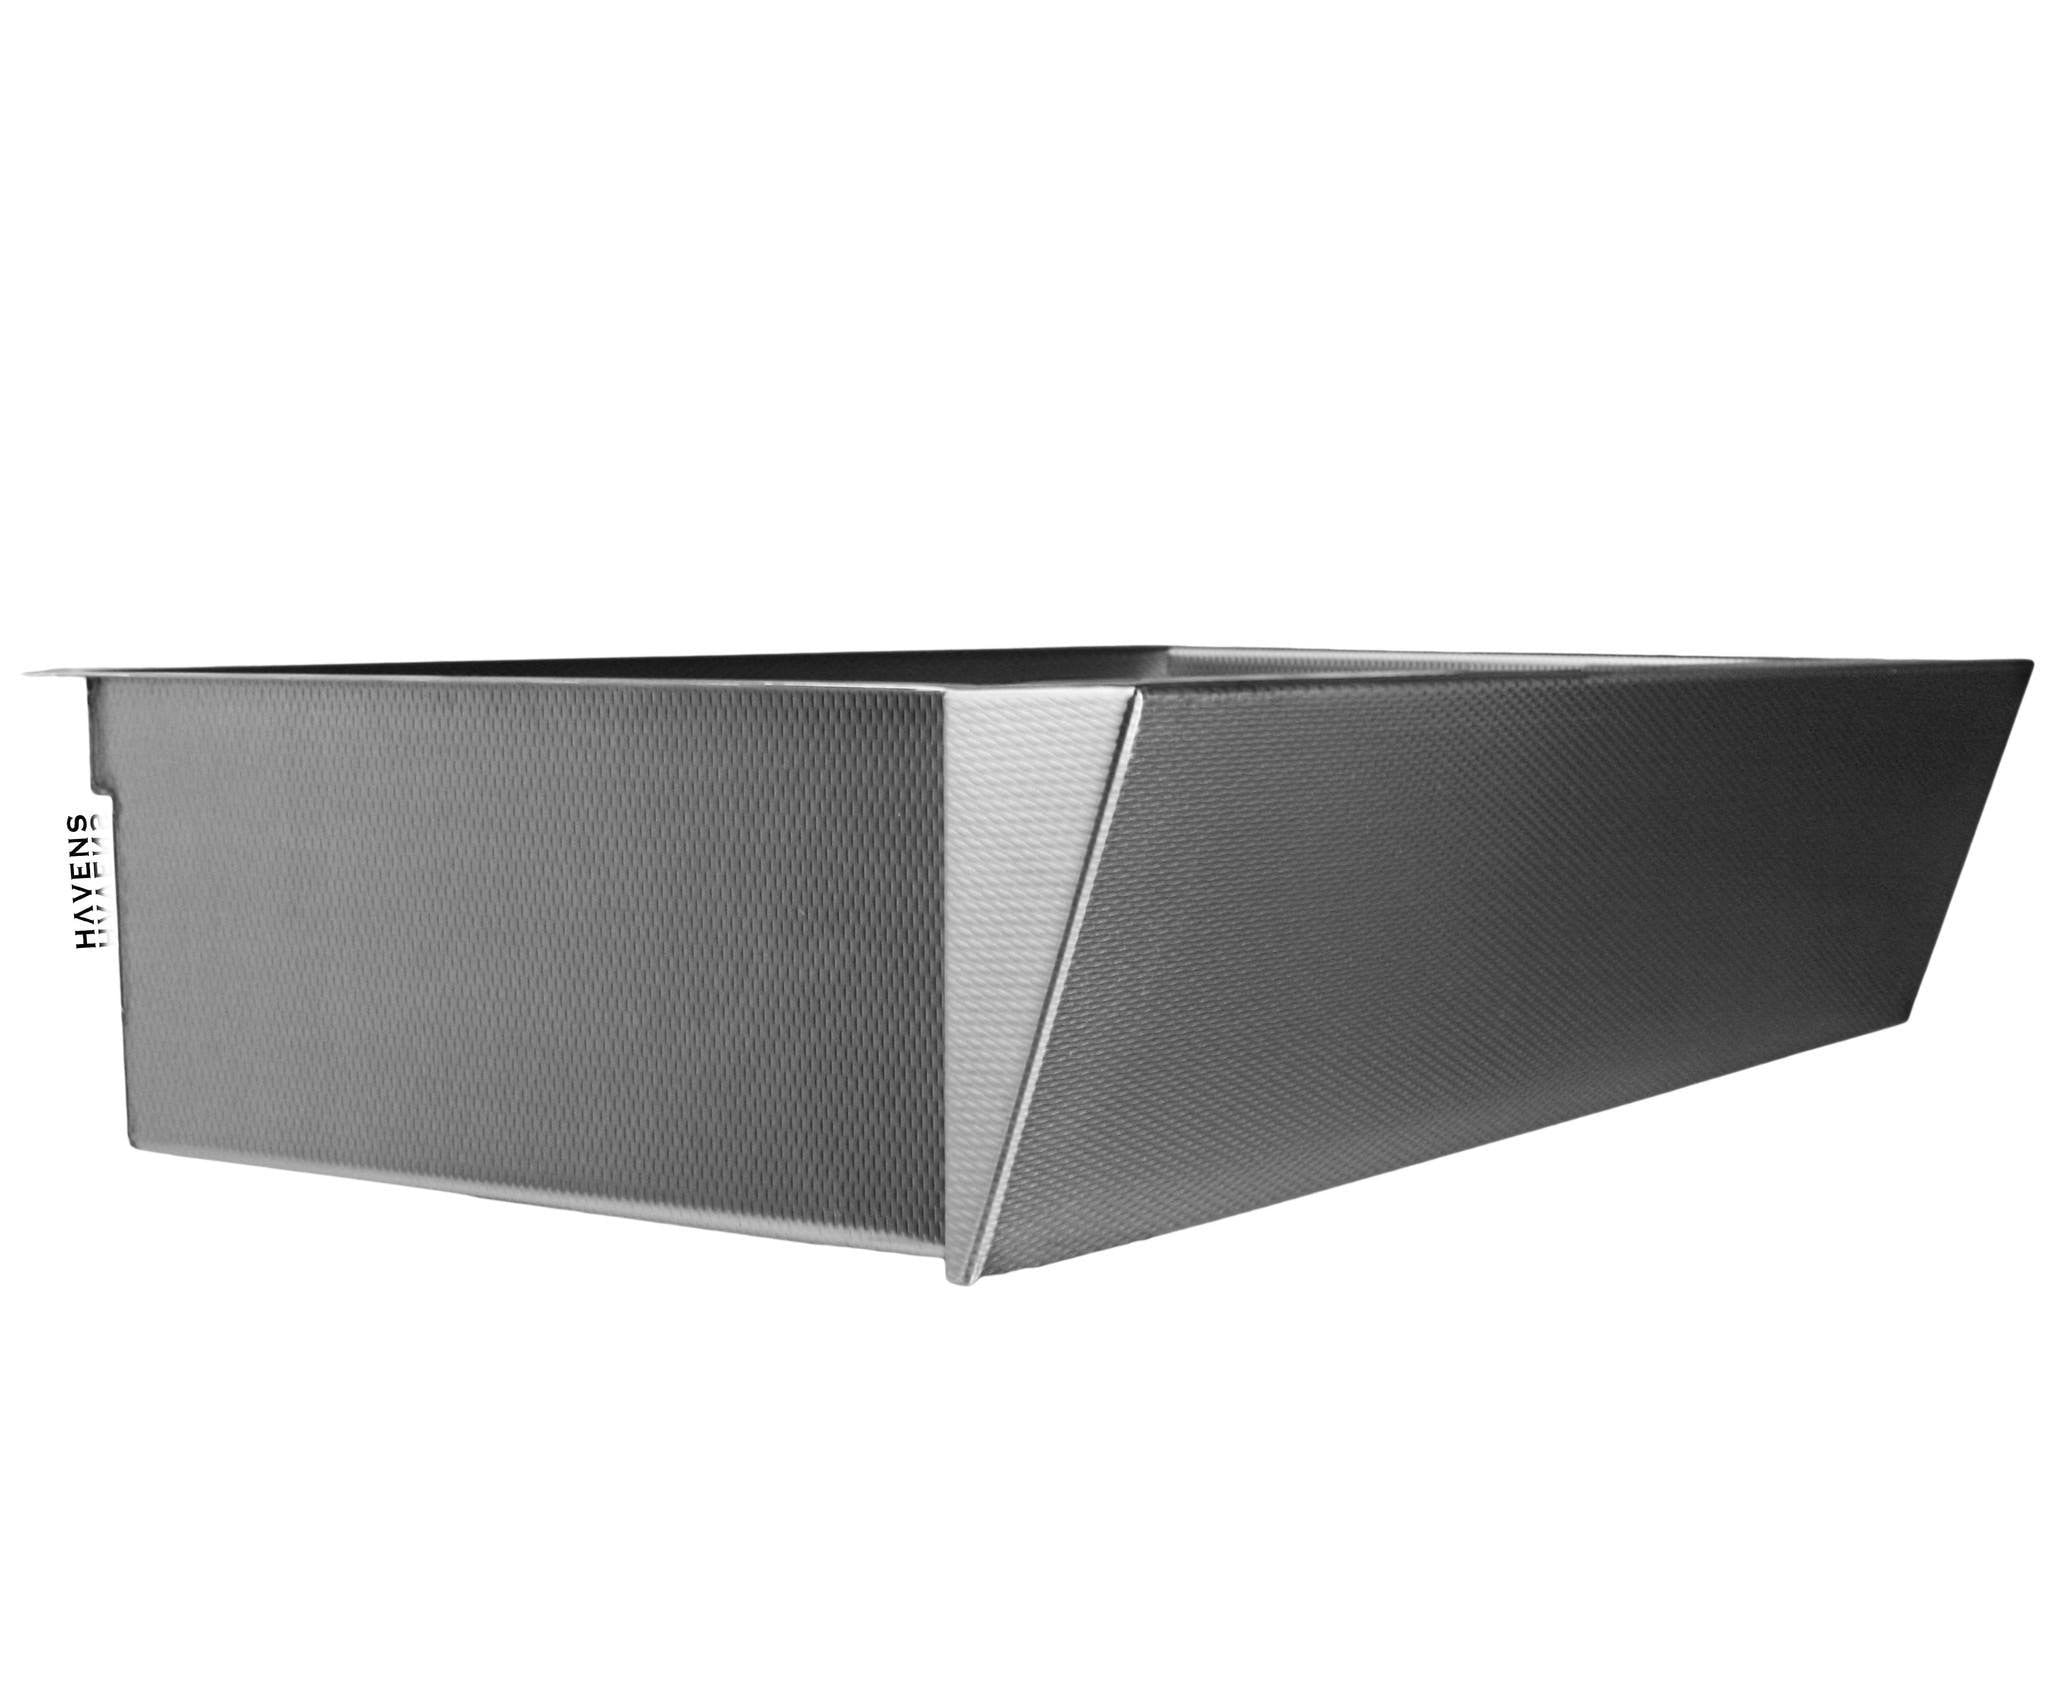 Nova Stainless Steel Sink - Undermount